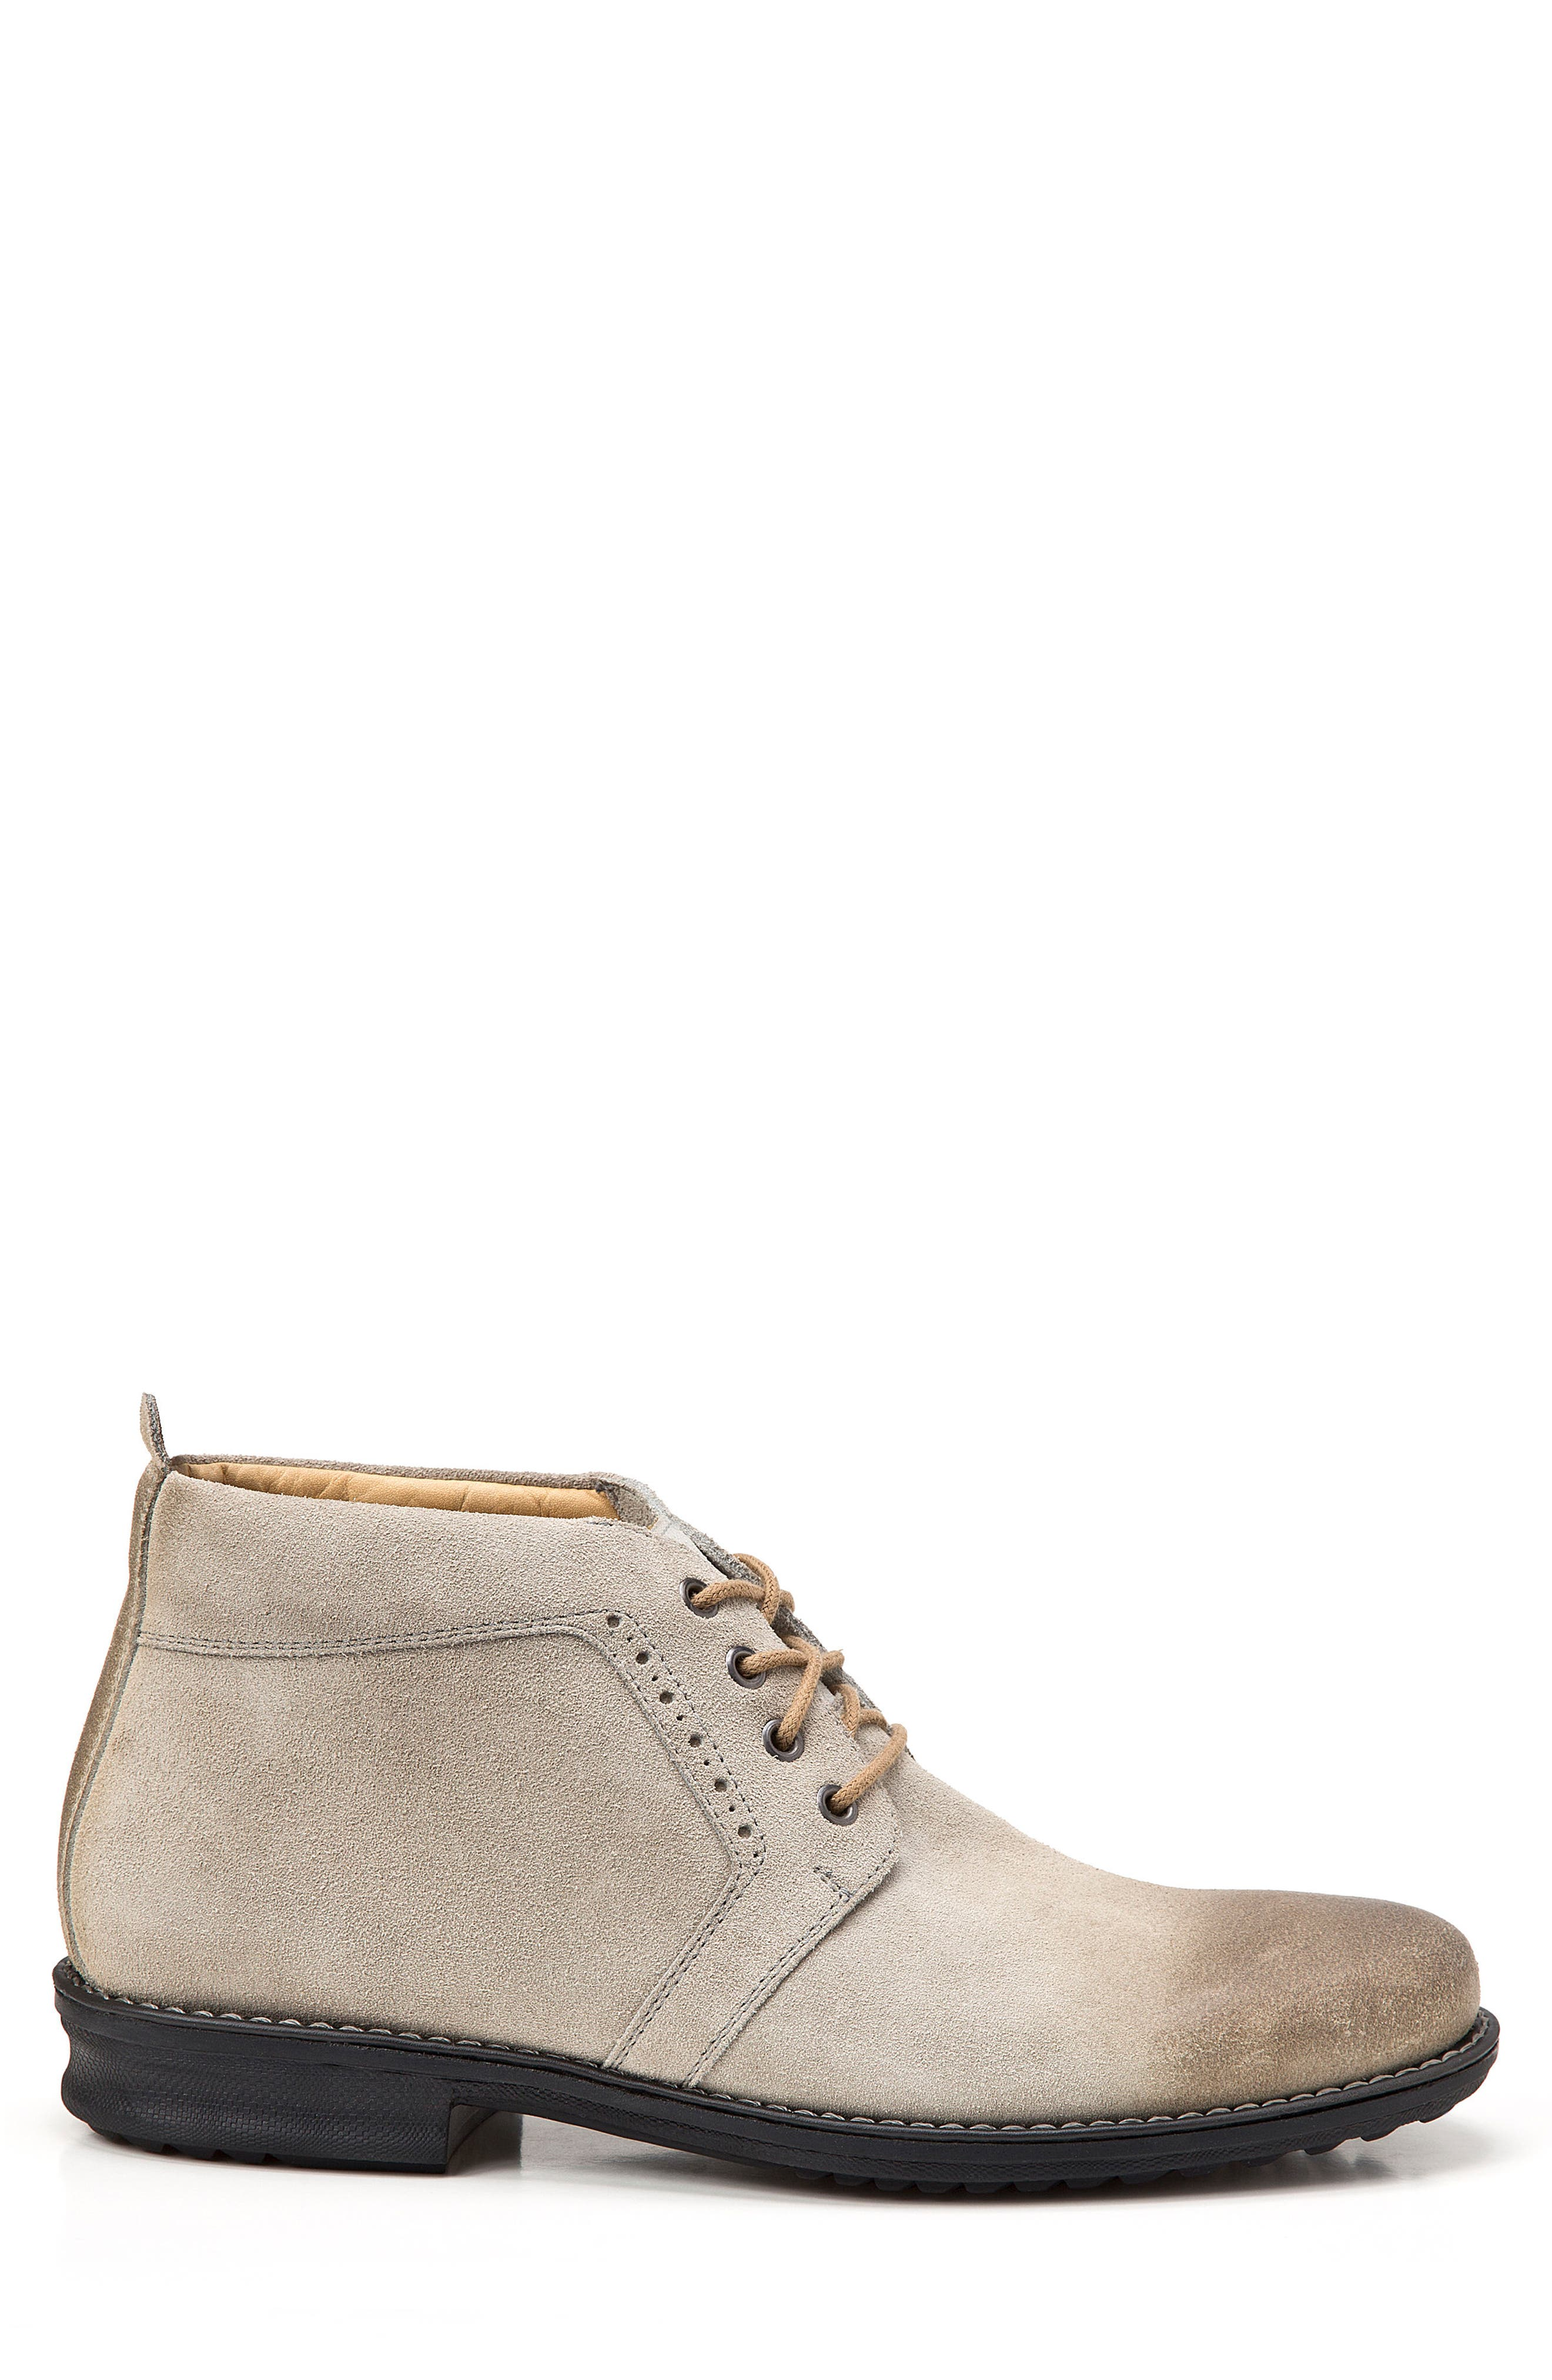 Chukka Boot,                             Alternate thumbnail 3, color,                             GREY